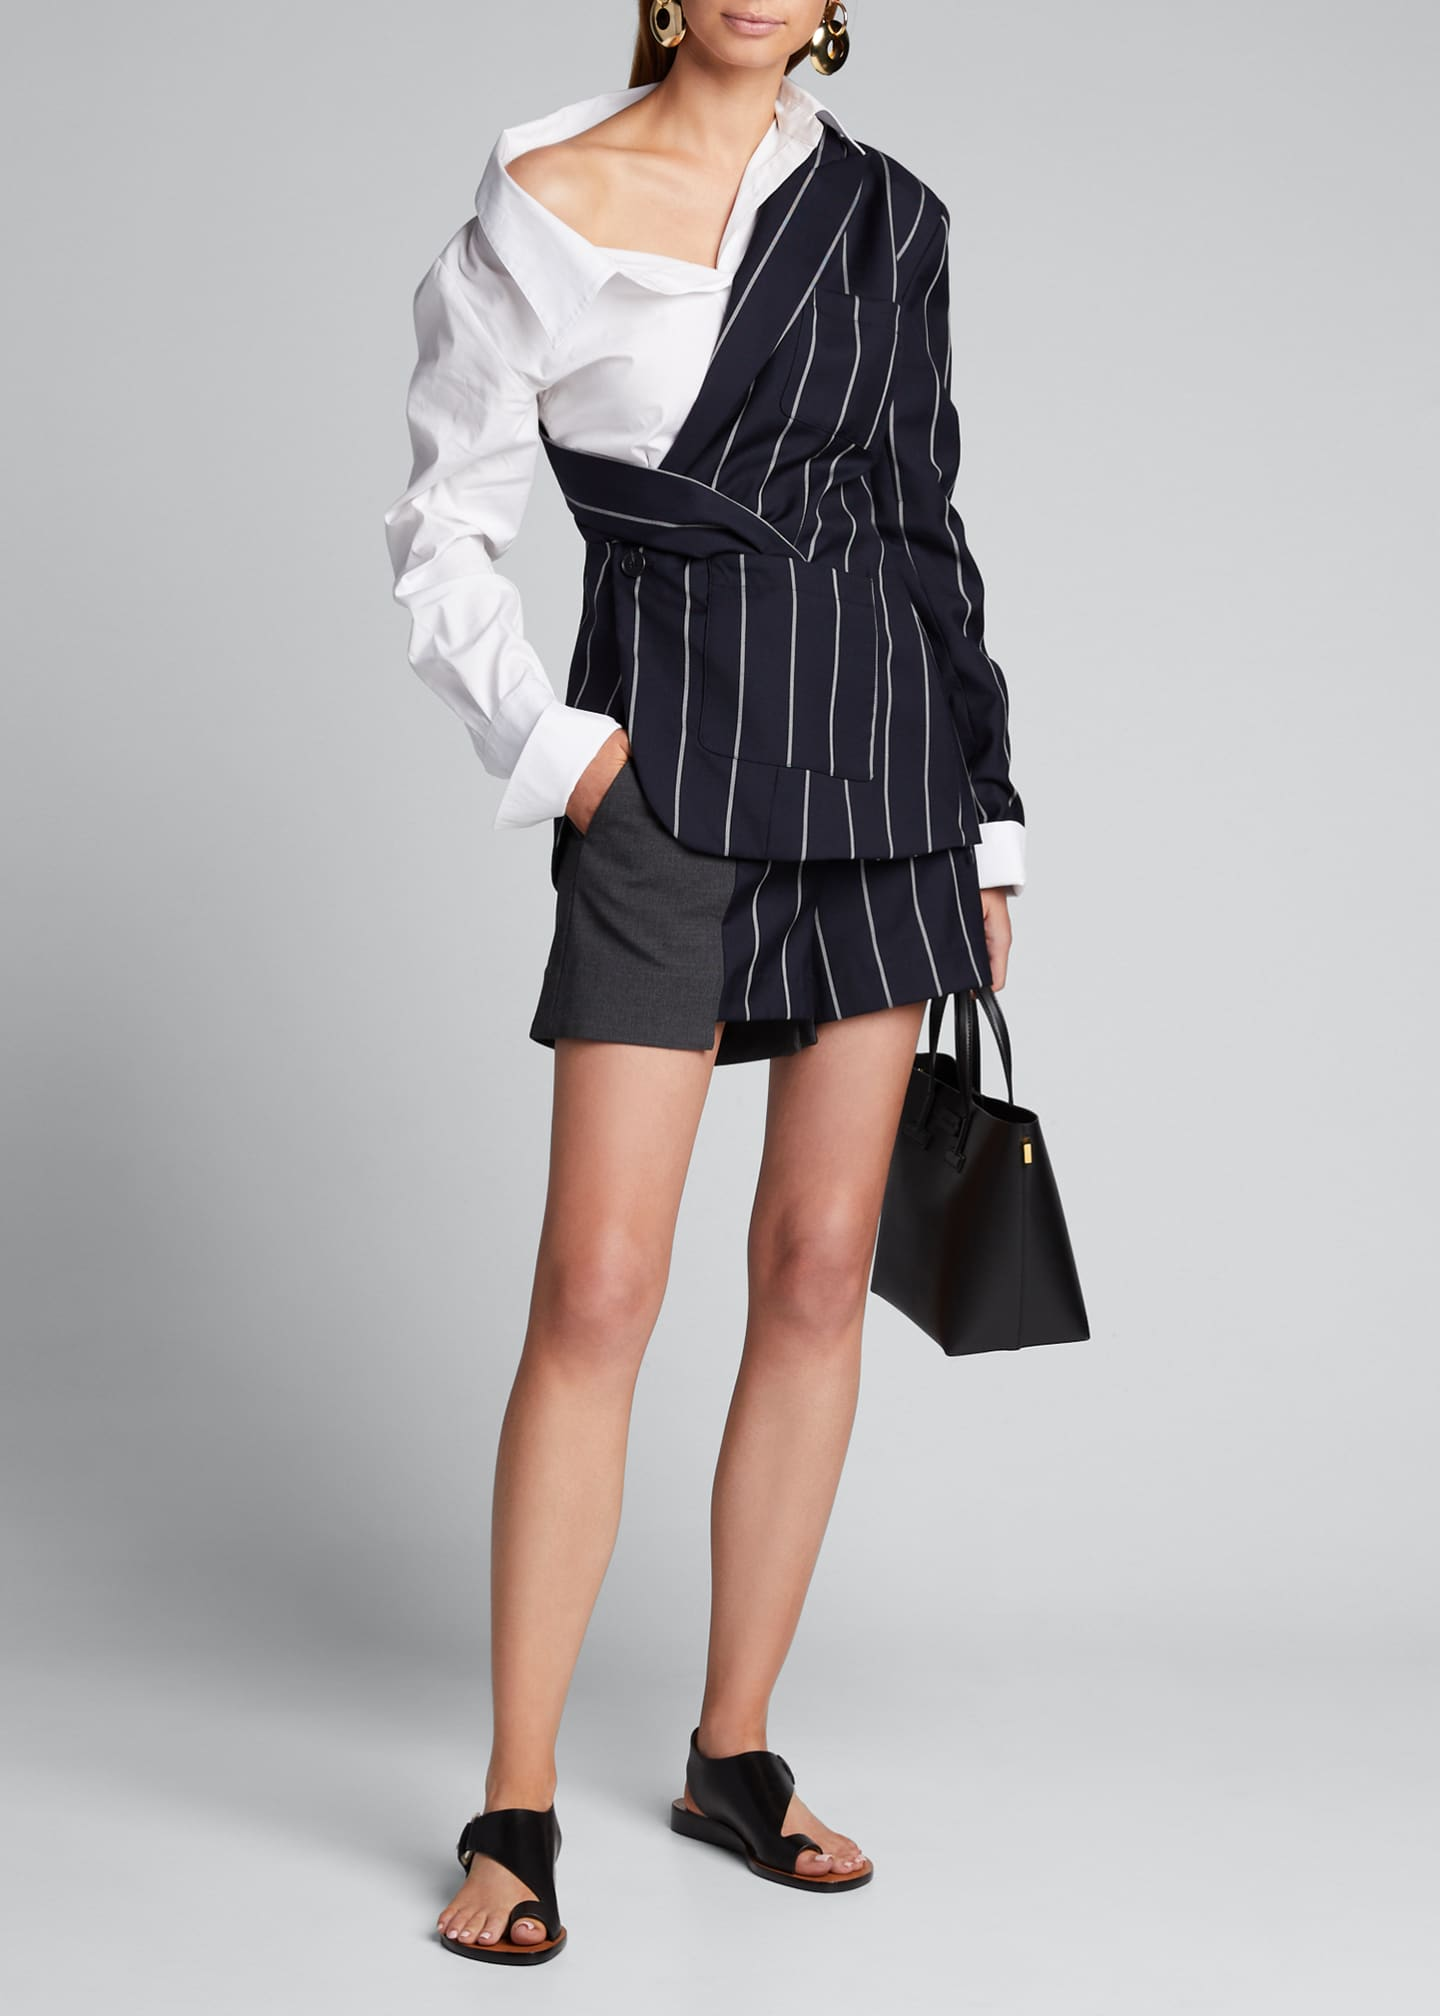 Monse Patchwork-Pinstriped Extended Shorts